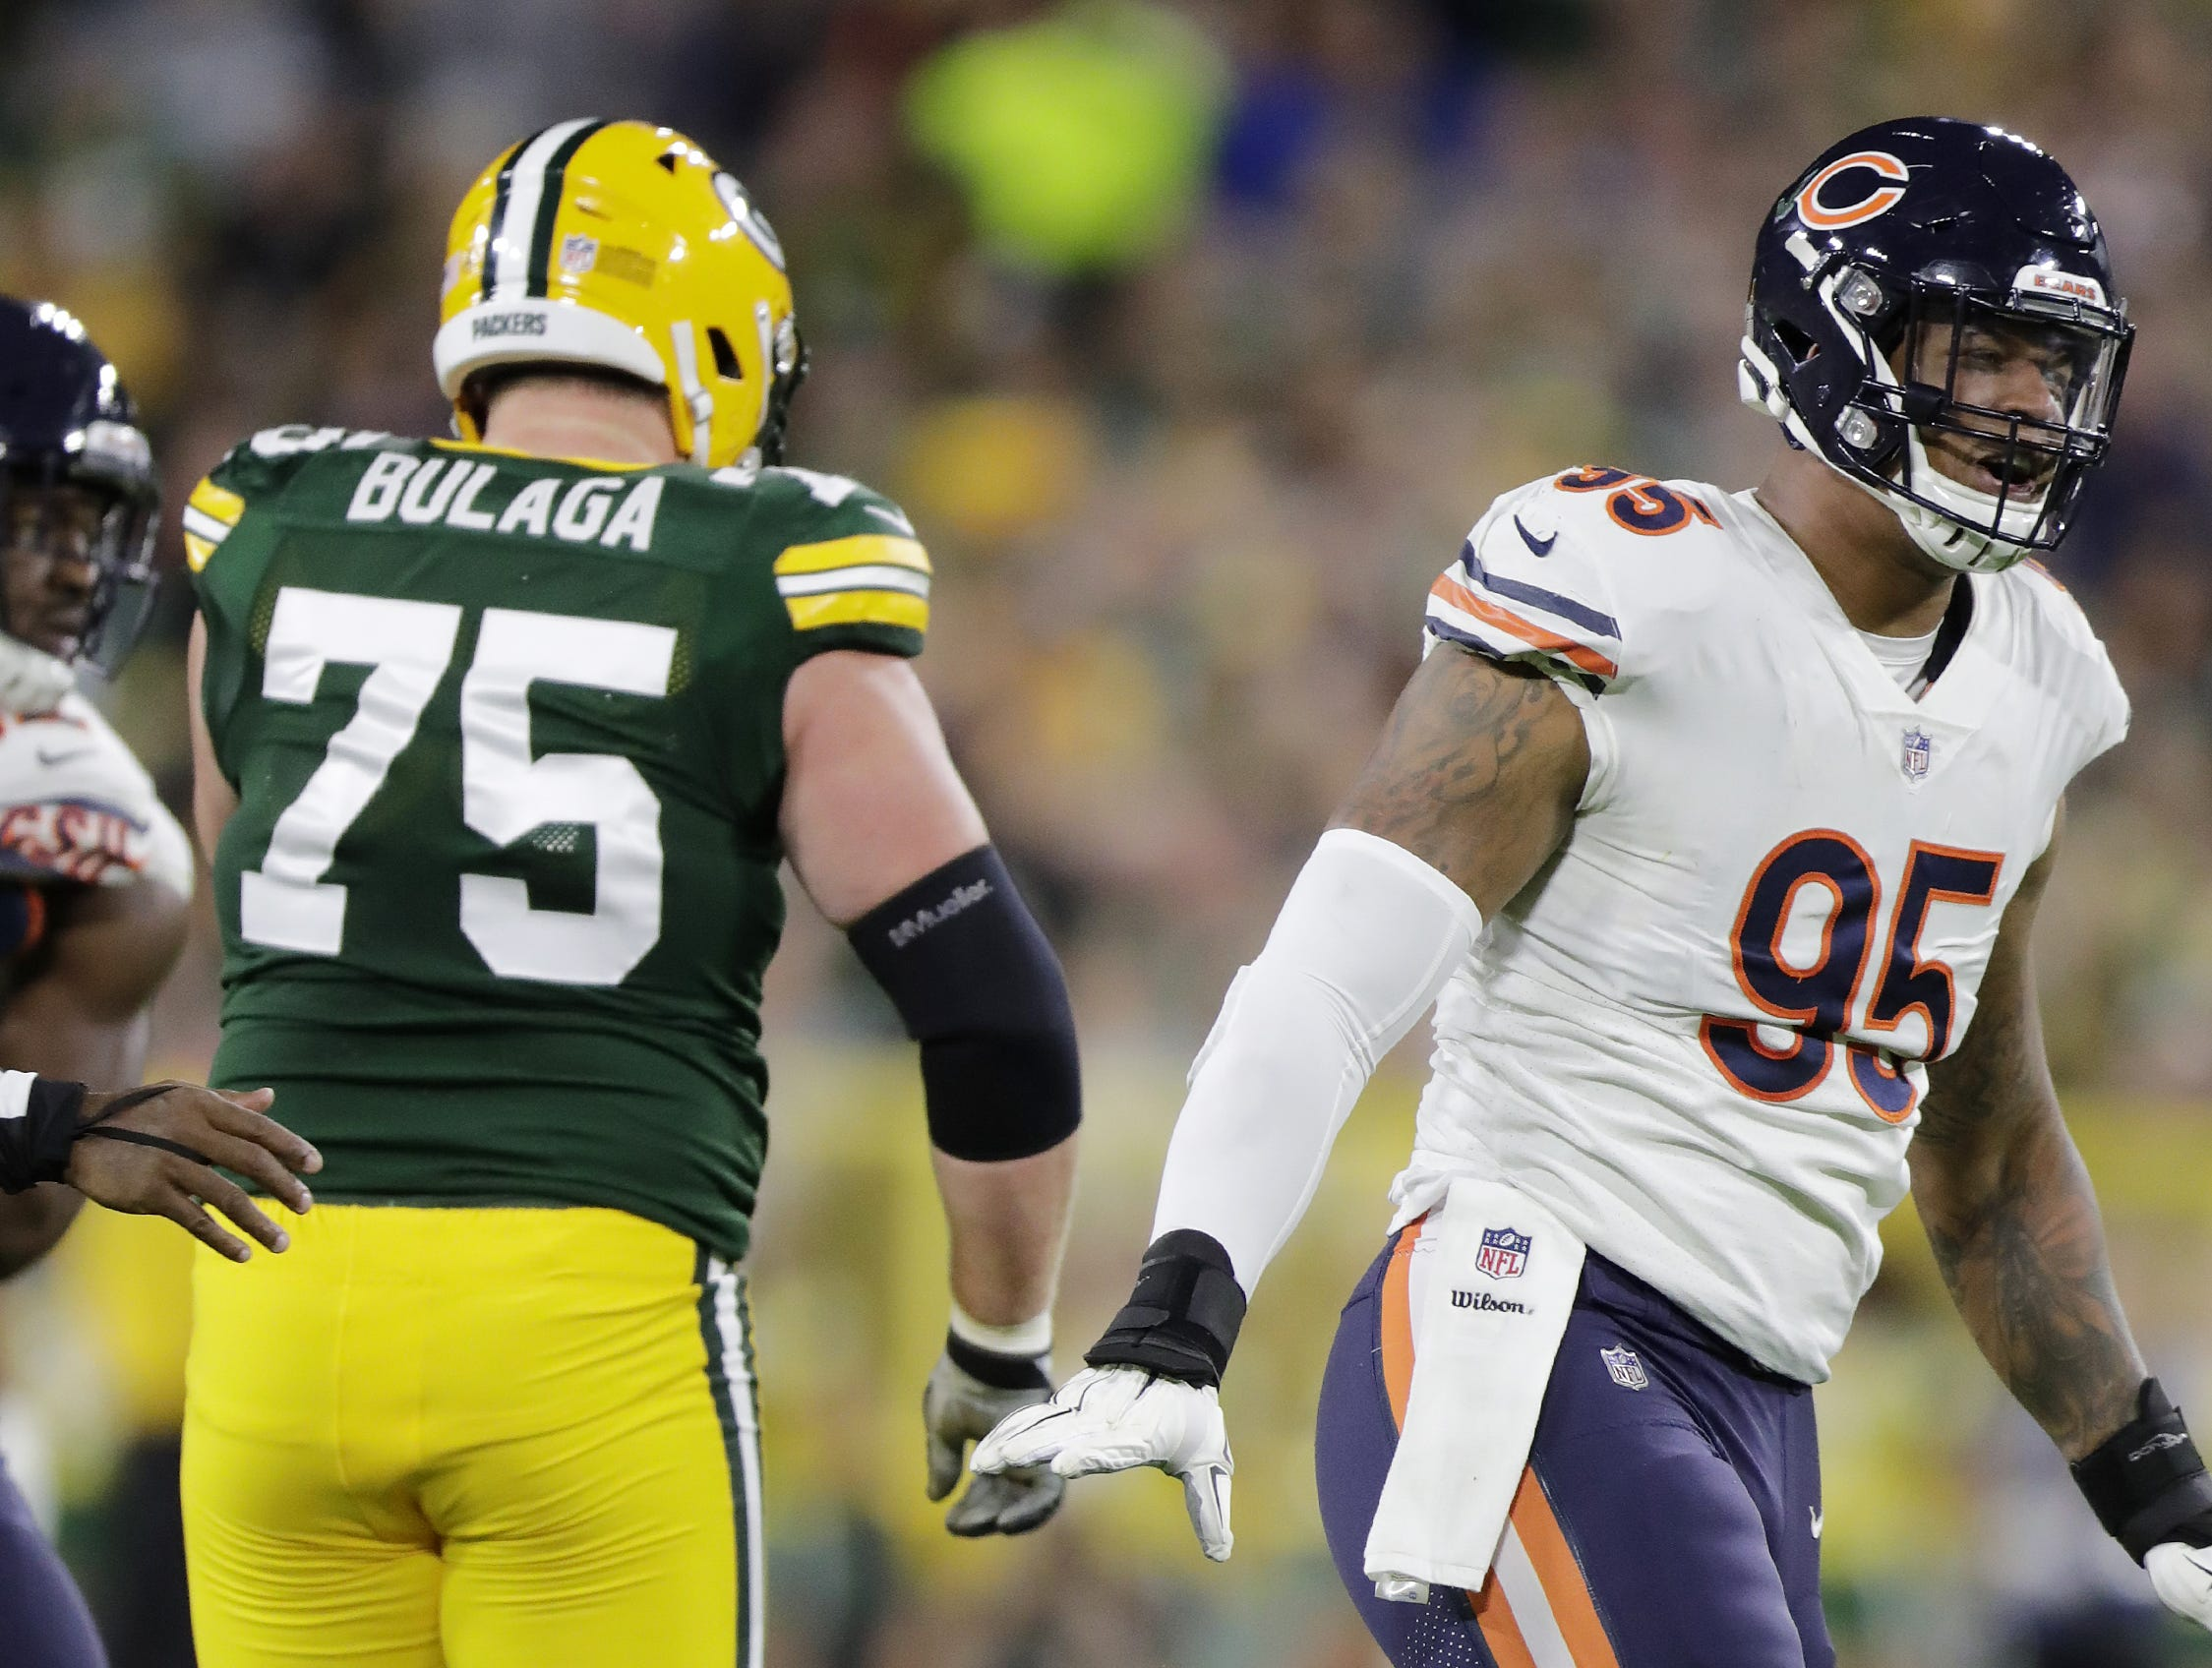 Chicago Bears defensive end Roy Robertson-Harris (95) reacts after sacking Green Bay Packers quarterback Aaron Rodgers (12) in the second quarter at Lambeau Field on Sunday, September 9, 2018 in Green Bay, Wis.